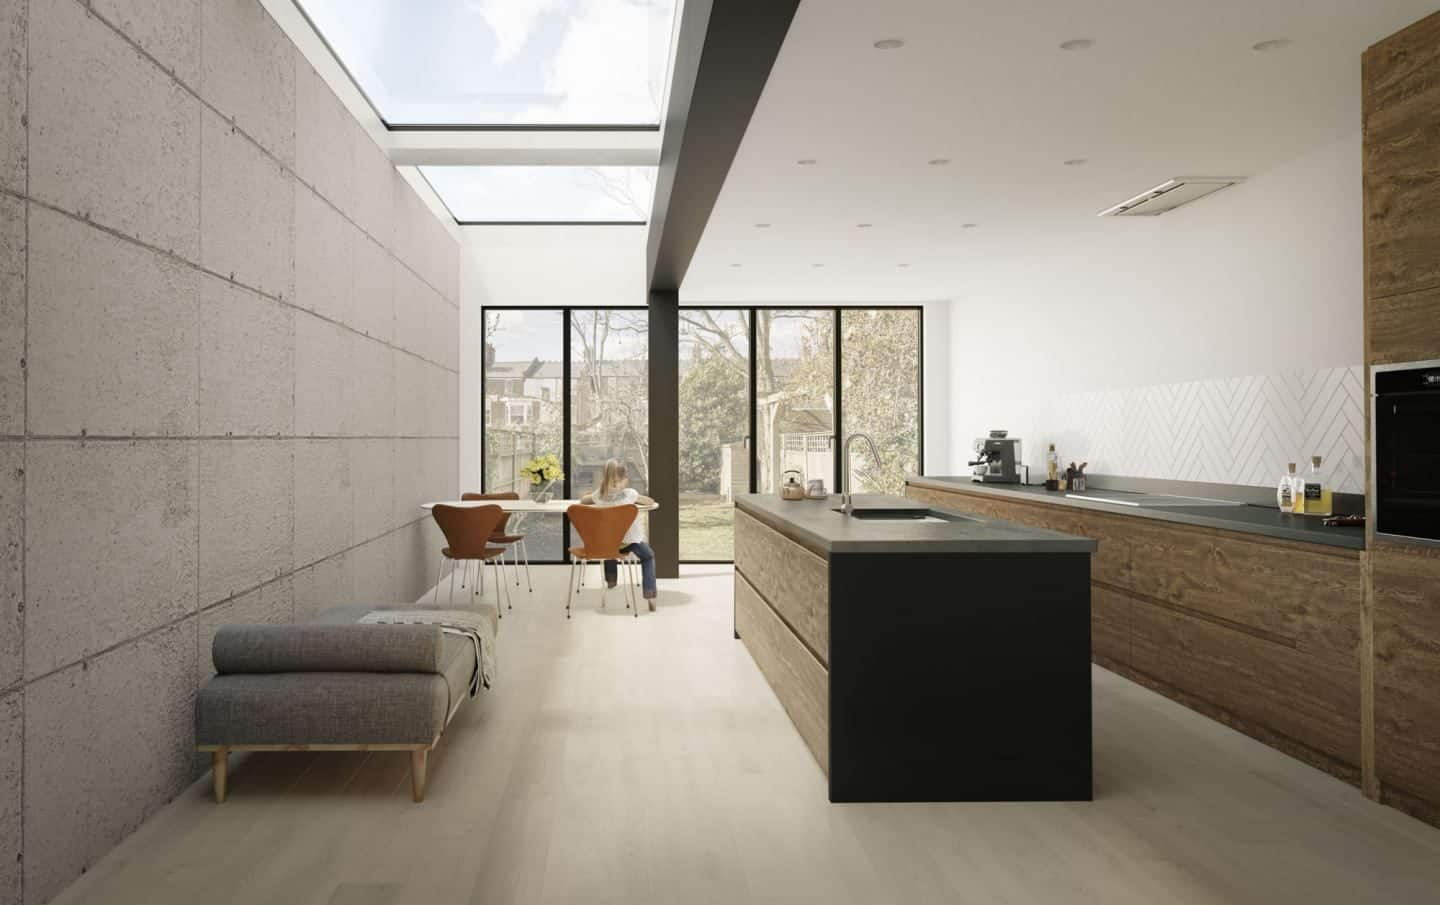 Vario by VELUX Bespoke Flat Roof Windowspictured above a modern open plan kitchen diner with raw concrete wall panels